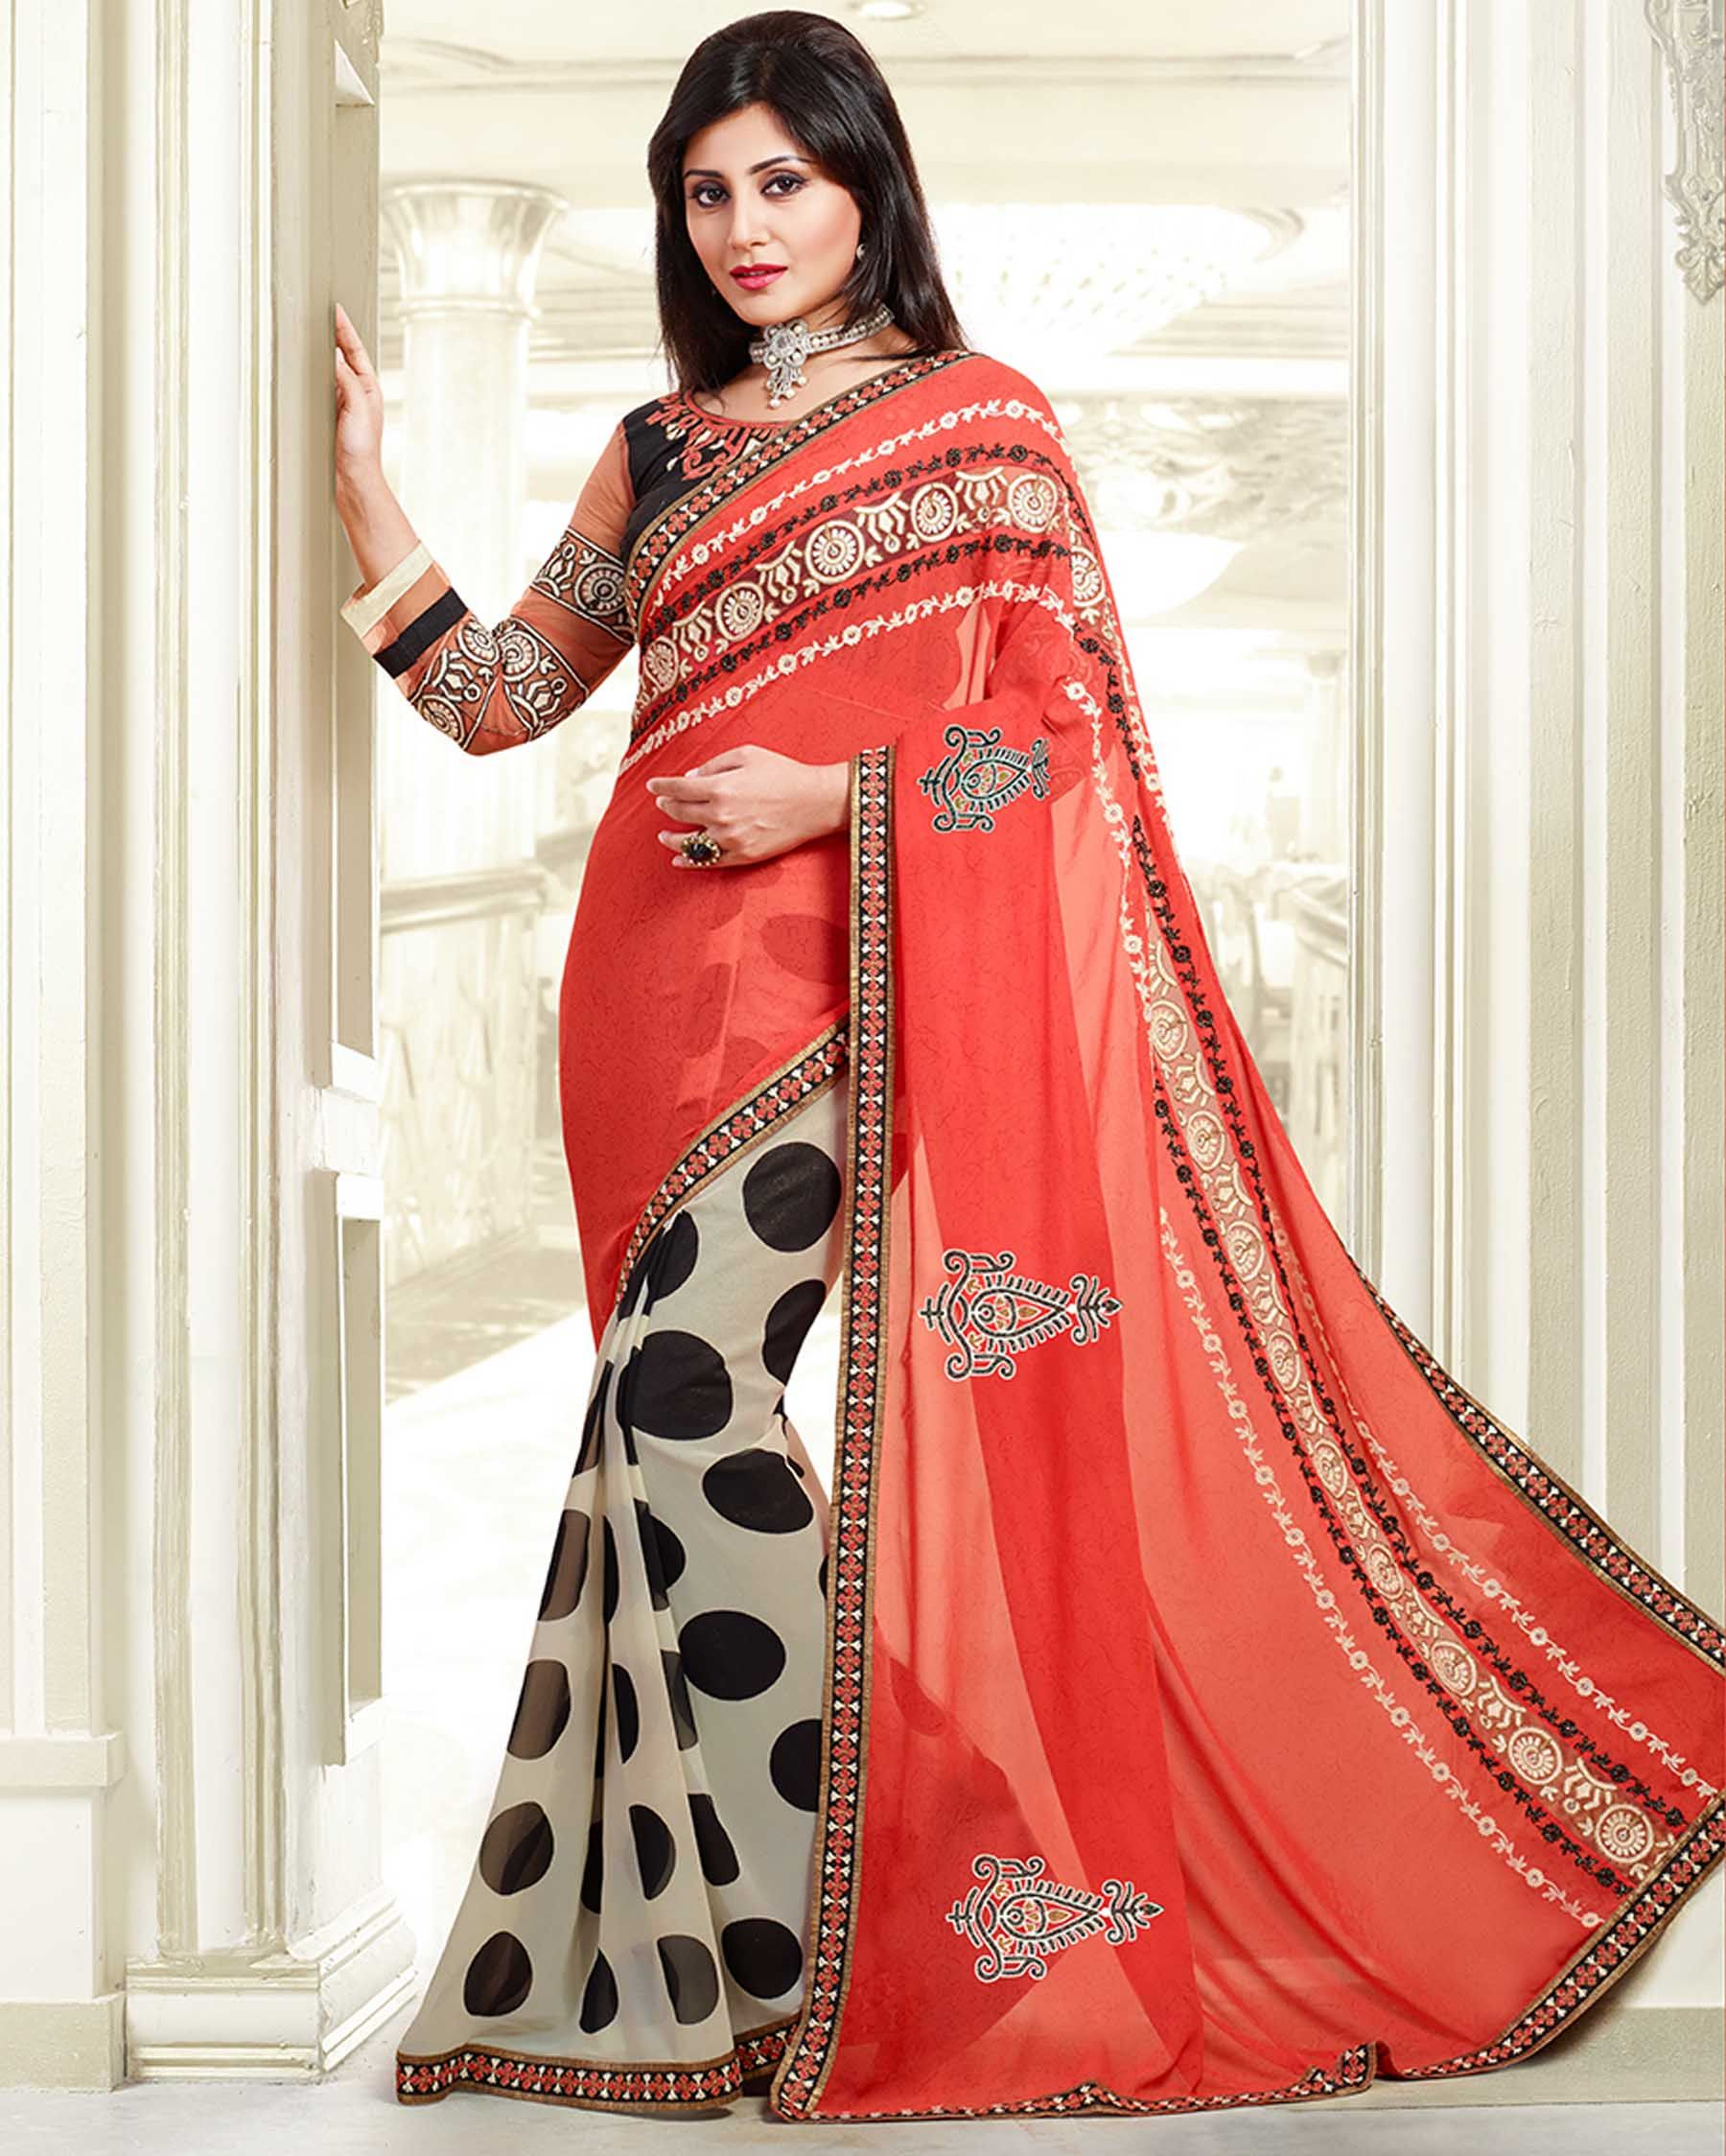 Red   luxuriant Embroidered Georgette latest trendy Sarees       Fabric:   Georgette       Work:   Embroidered       Type:   latest trendy Sarees       Color:   Red                 Saree Fabric   Georgette       Blouse Fabric   Raw Silk